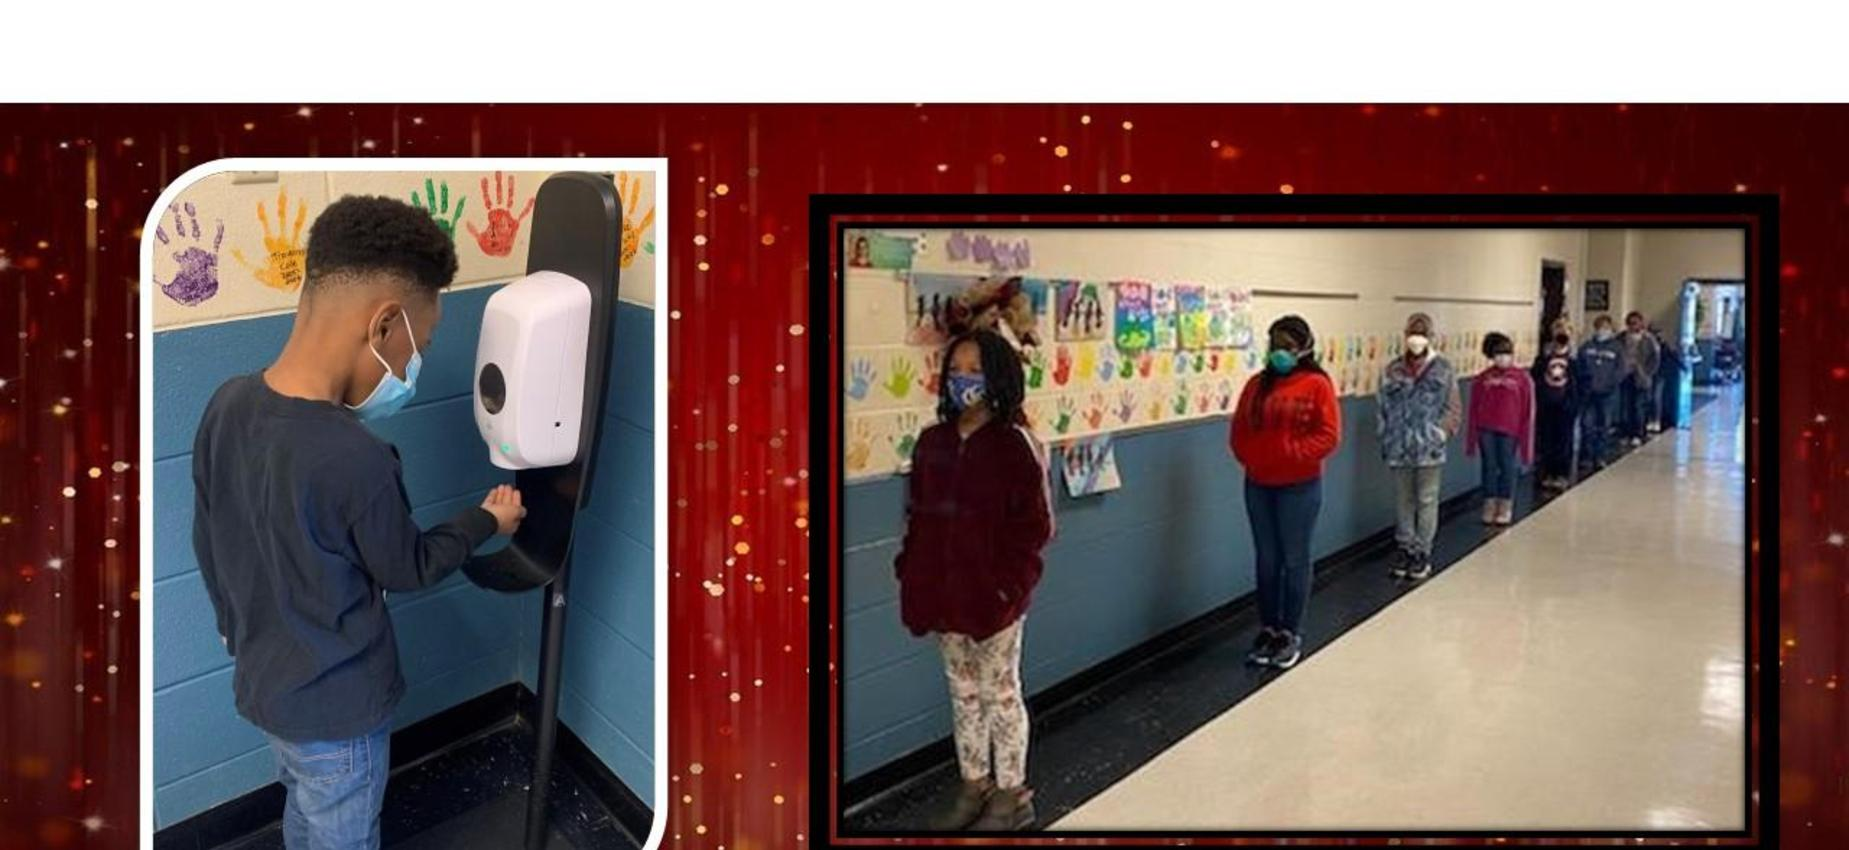 Germ-x station and 4th grade social distancing in line.